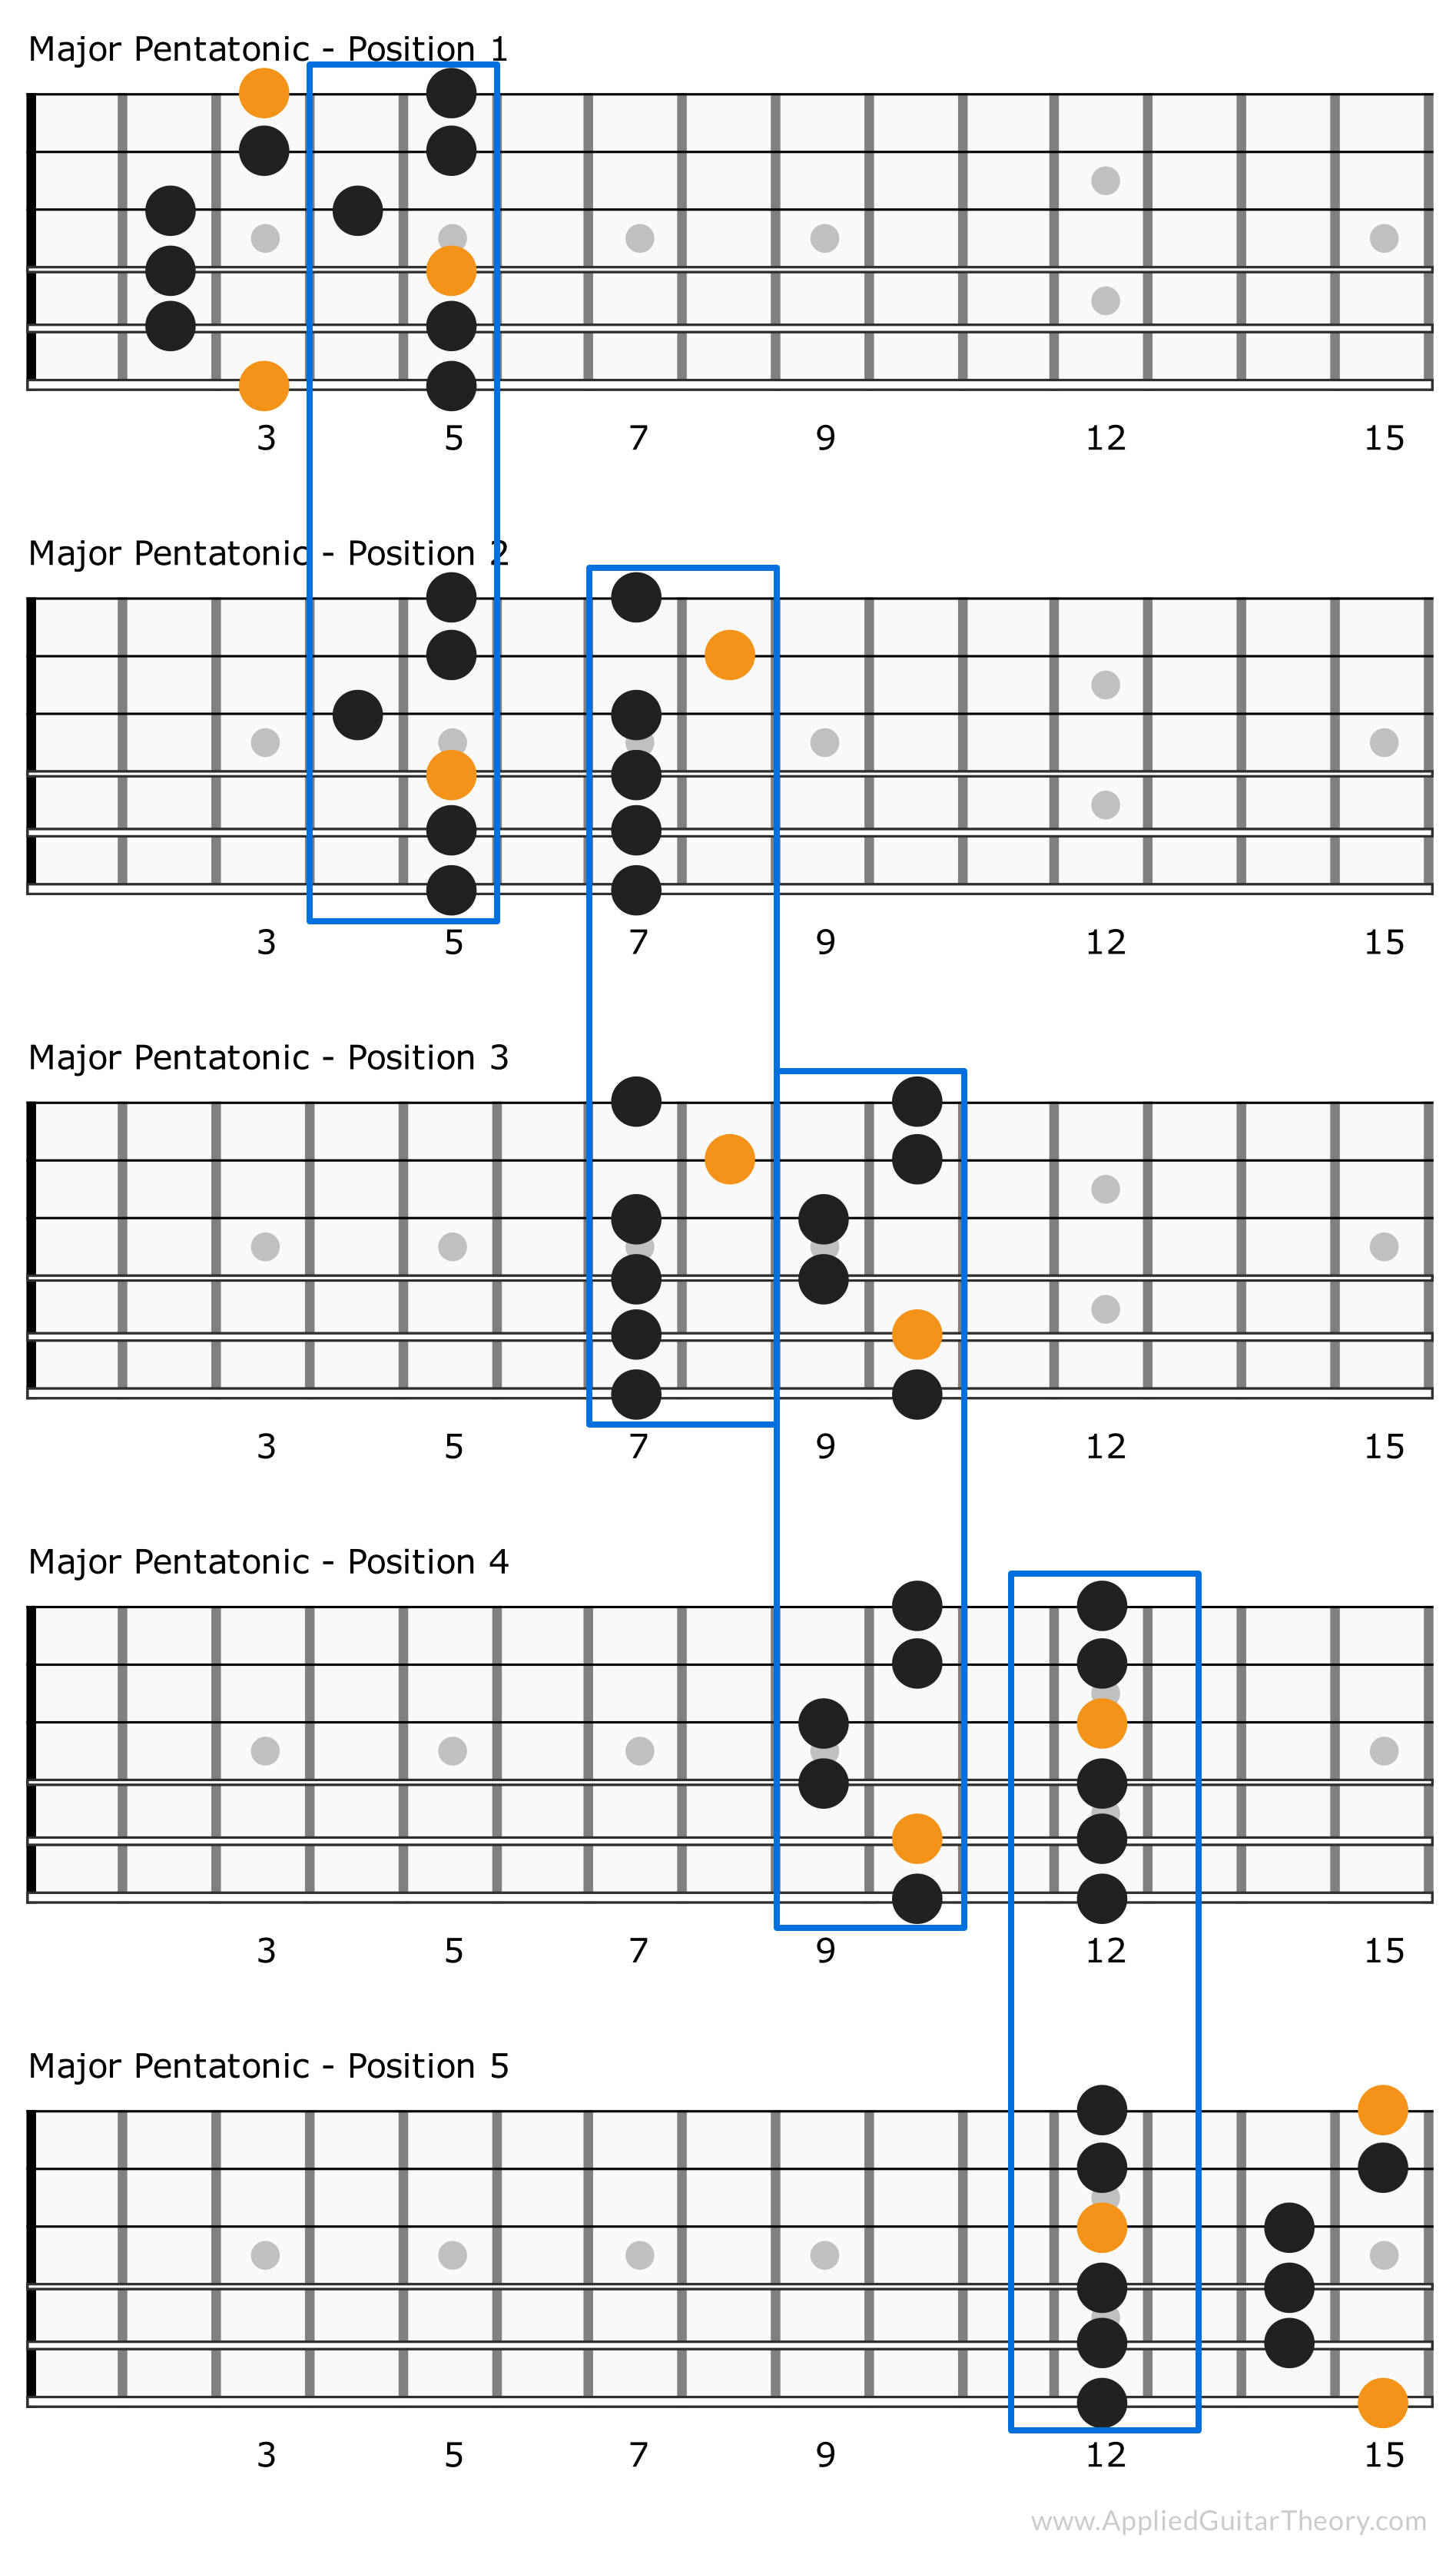 5 Major Pentatonic Scale Patterns Connected